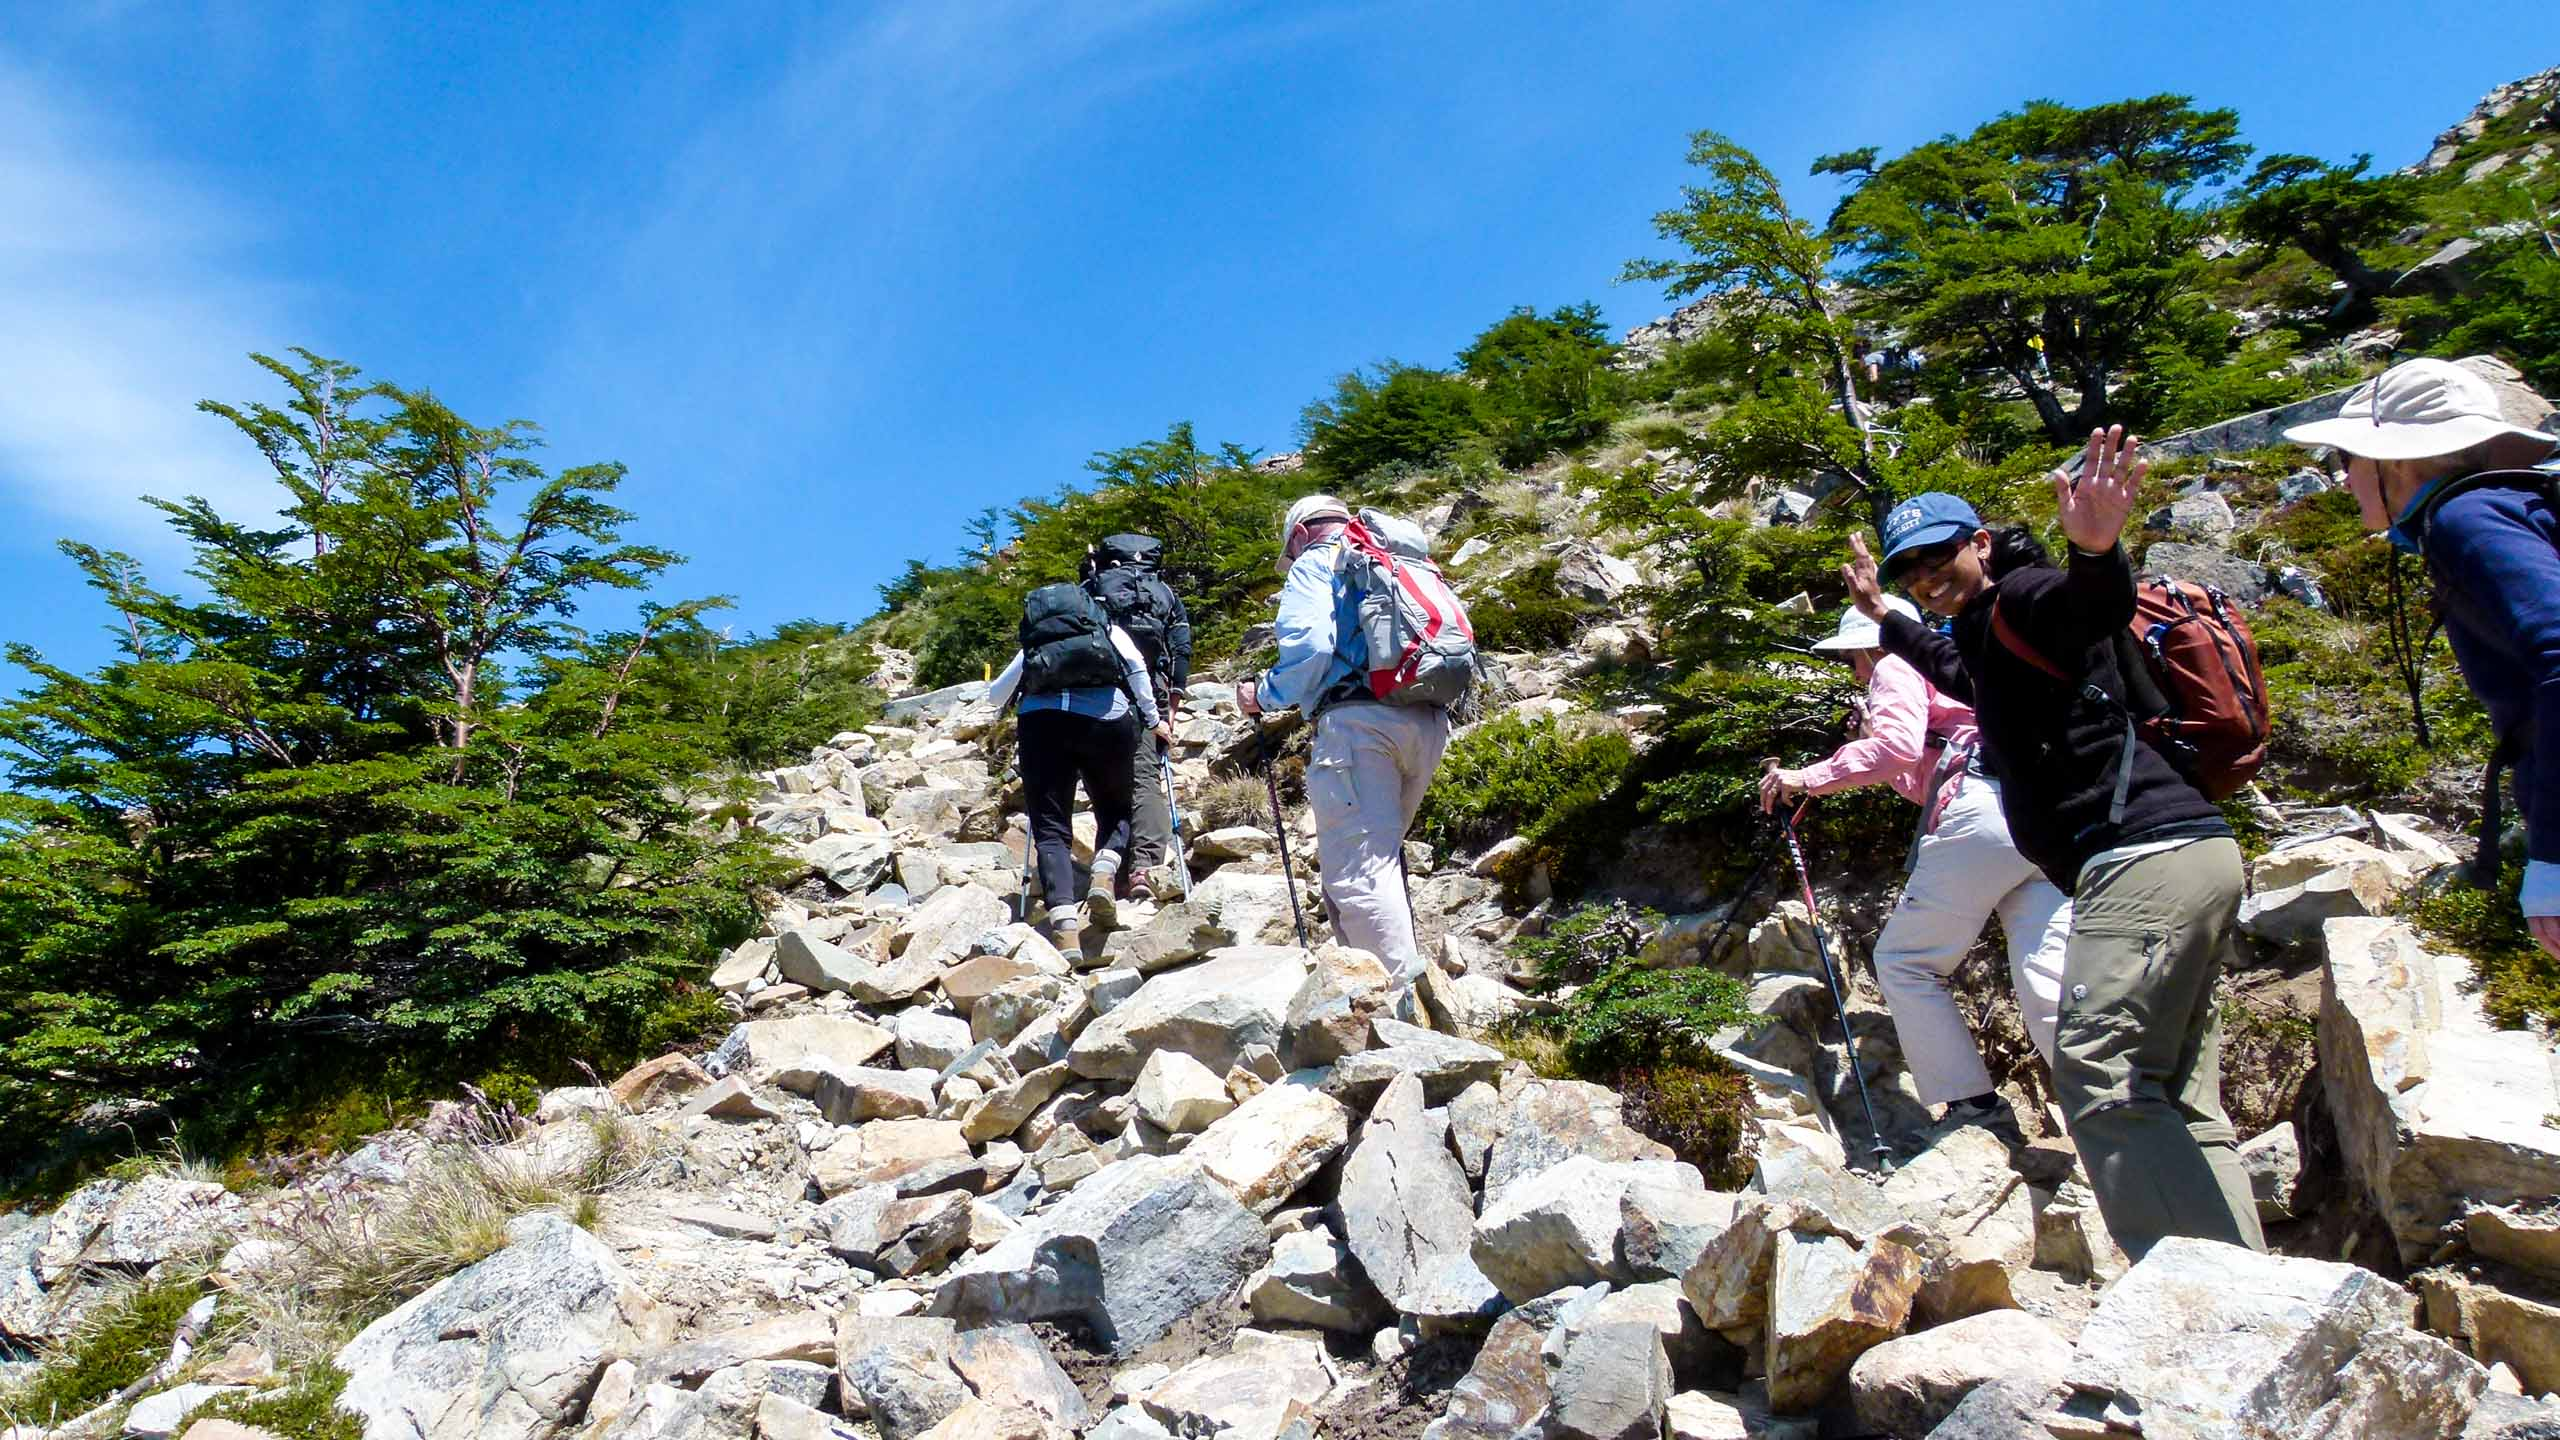 Hiking group climbs rocky trail in Argentina